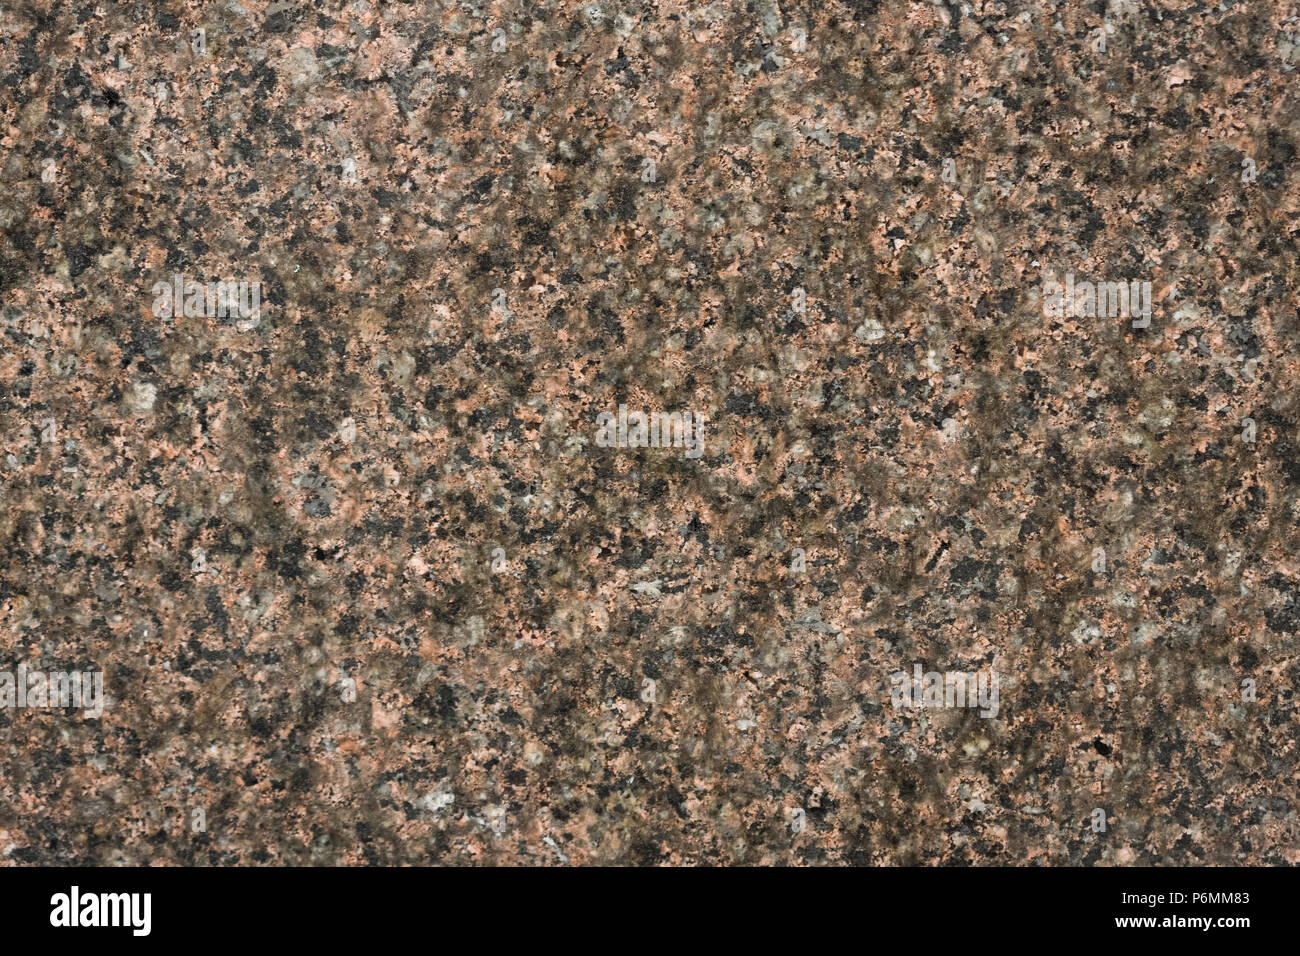 Natural Granite Texture Special For Your Interior High Resolution Photo Stock Photo Alamy